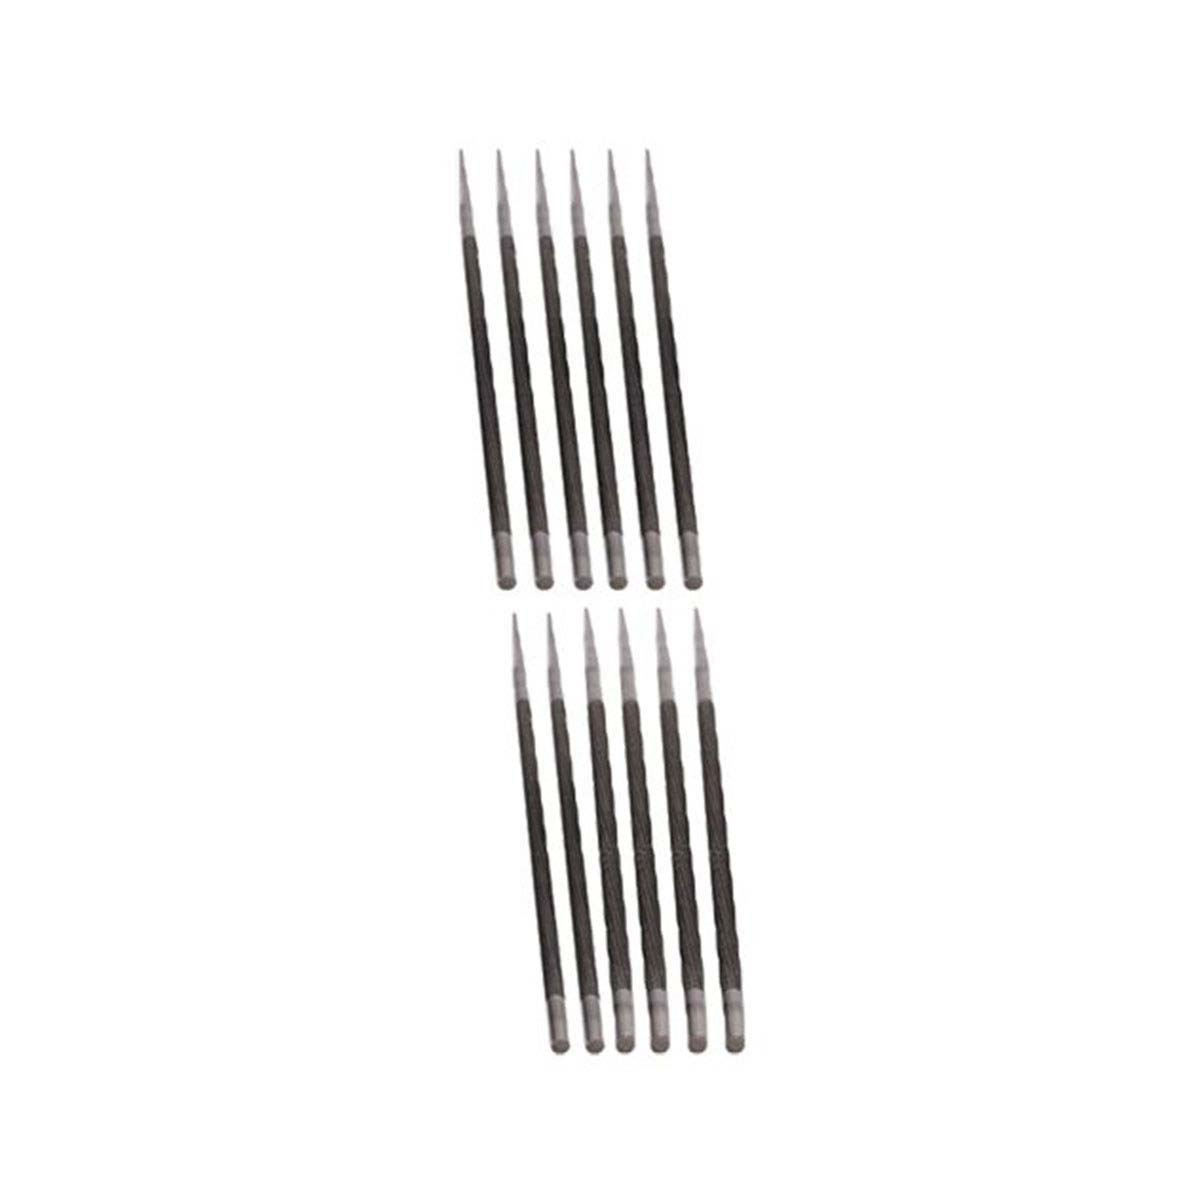 Husqvarna 597355302 5/32(4 0mm) Rd Files (12)